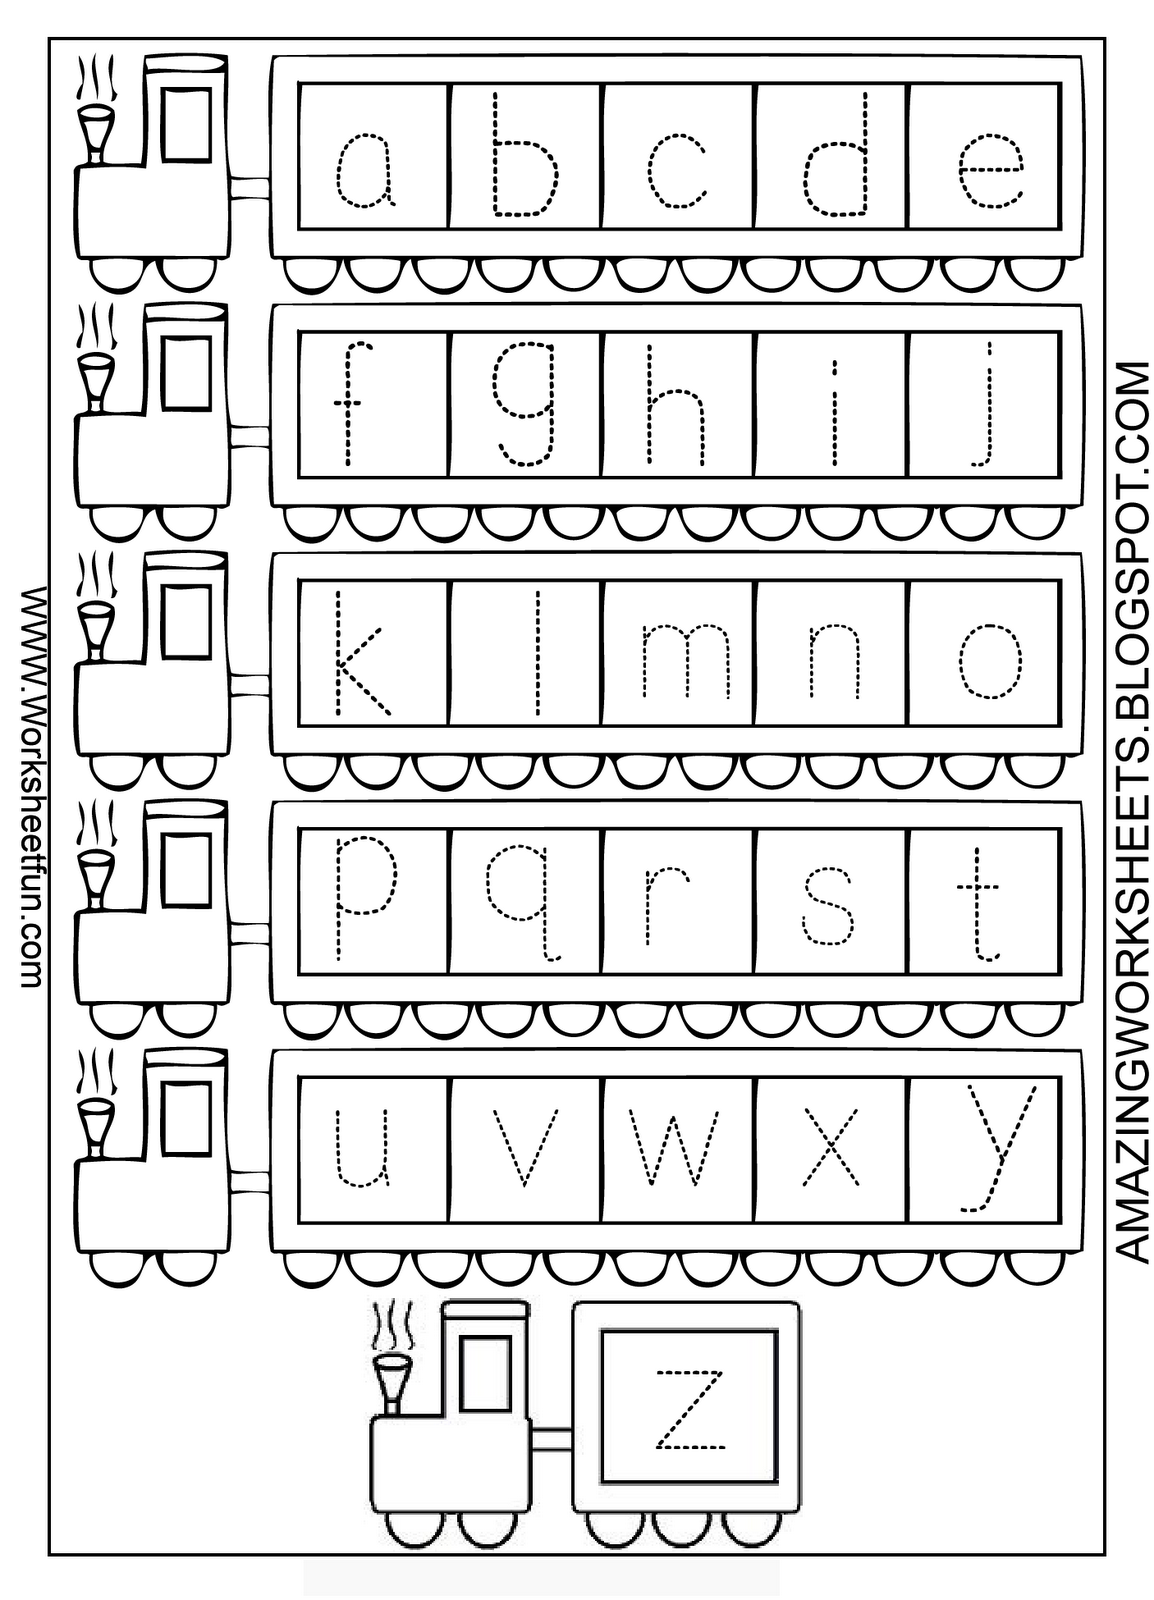 Kindergarten Abc Tracing Worksheets abc traceable worksheets – Free Abc Worksheets for Kindergarten